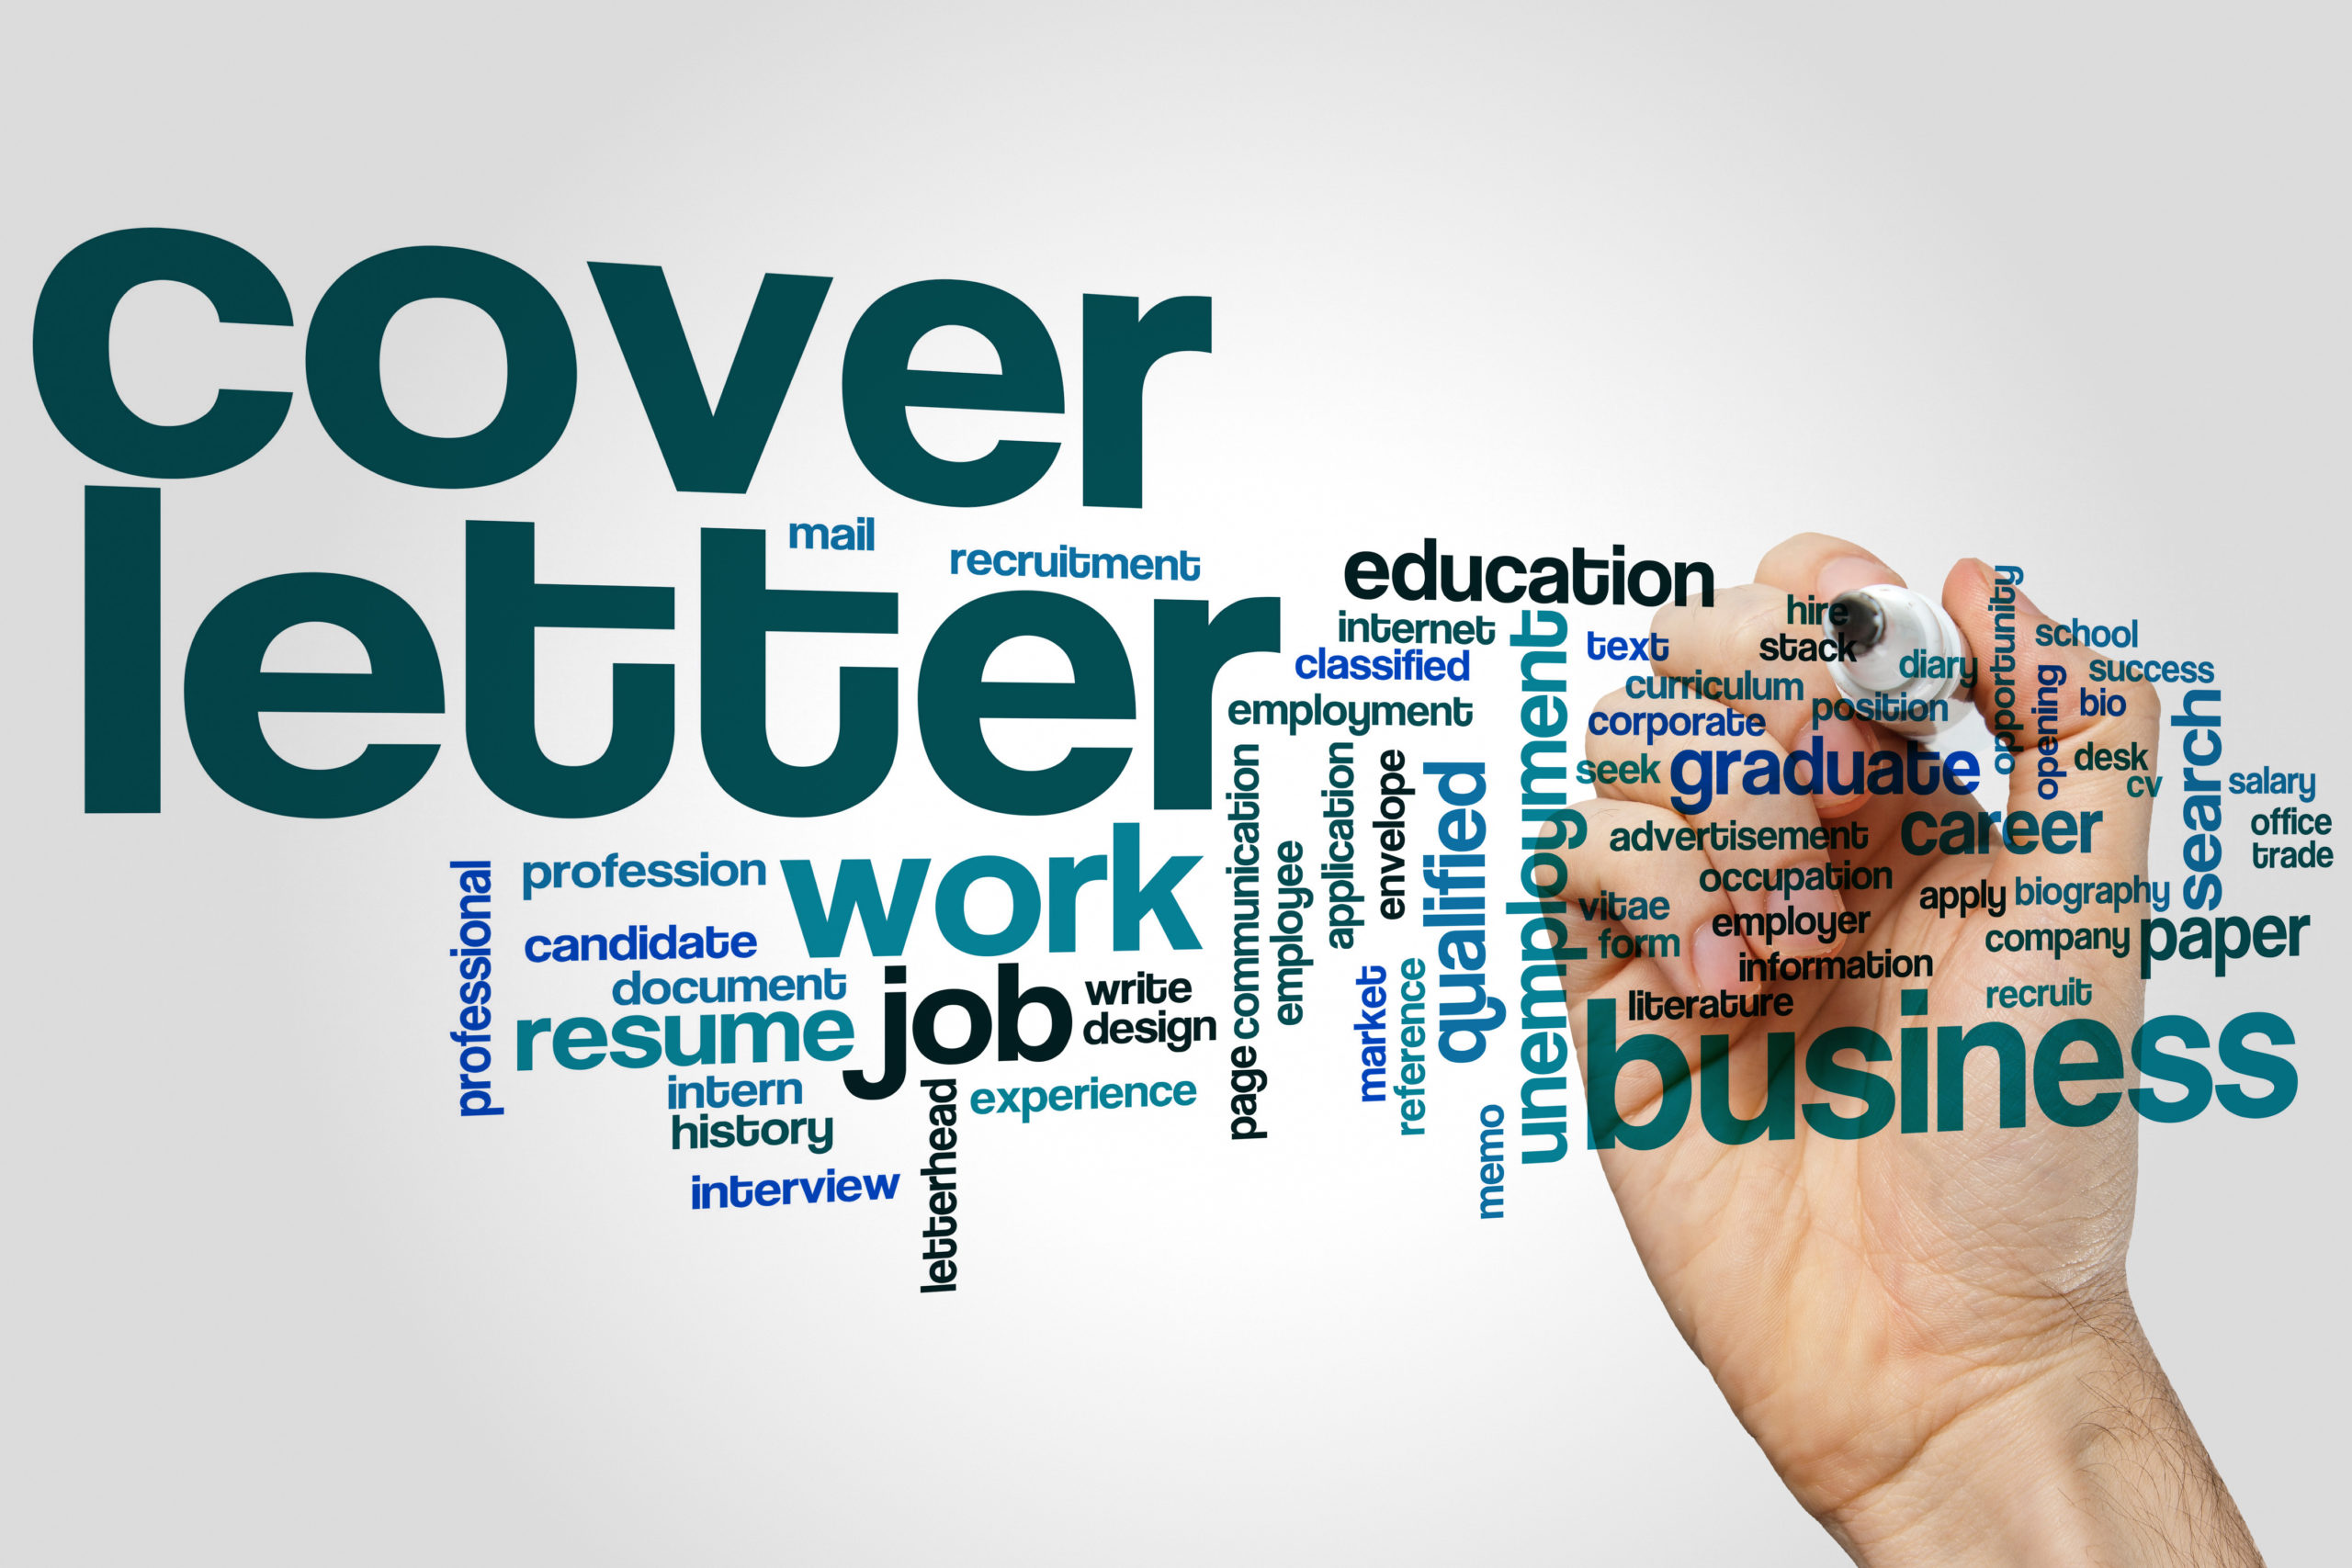 How To Draft A Cover Letter